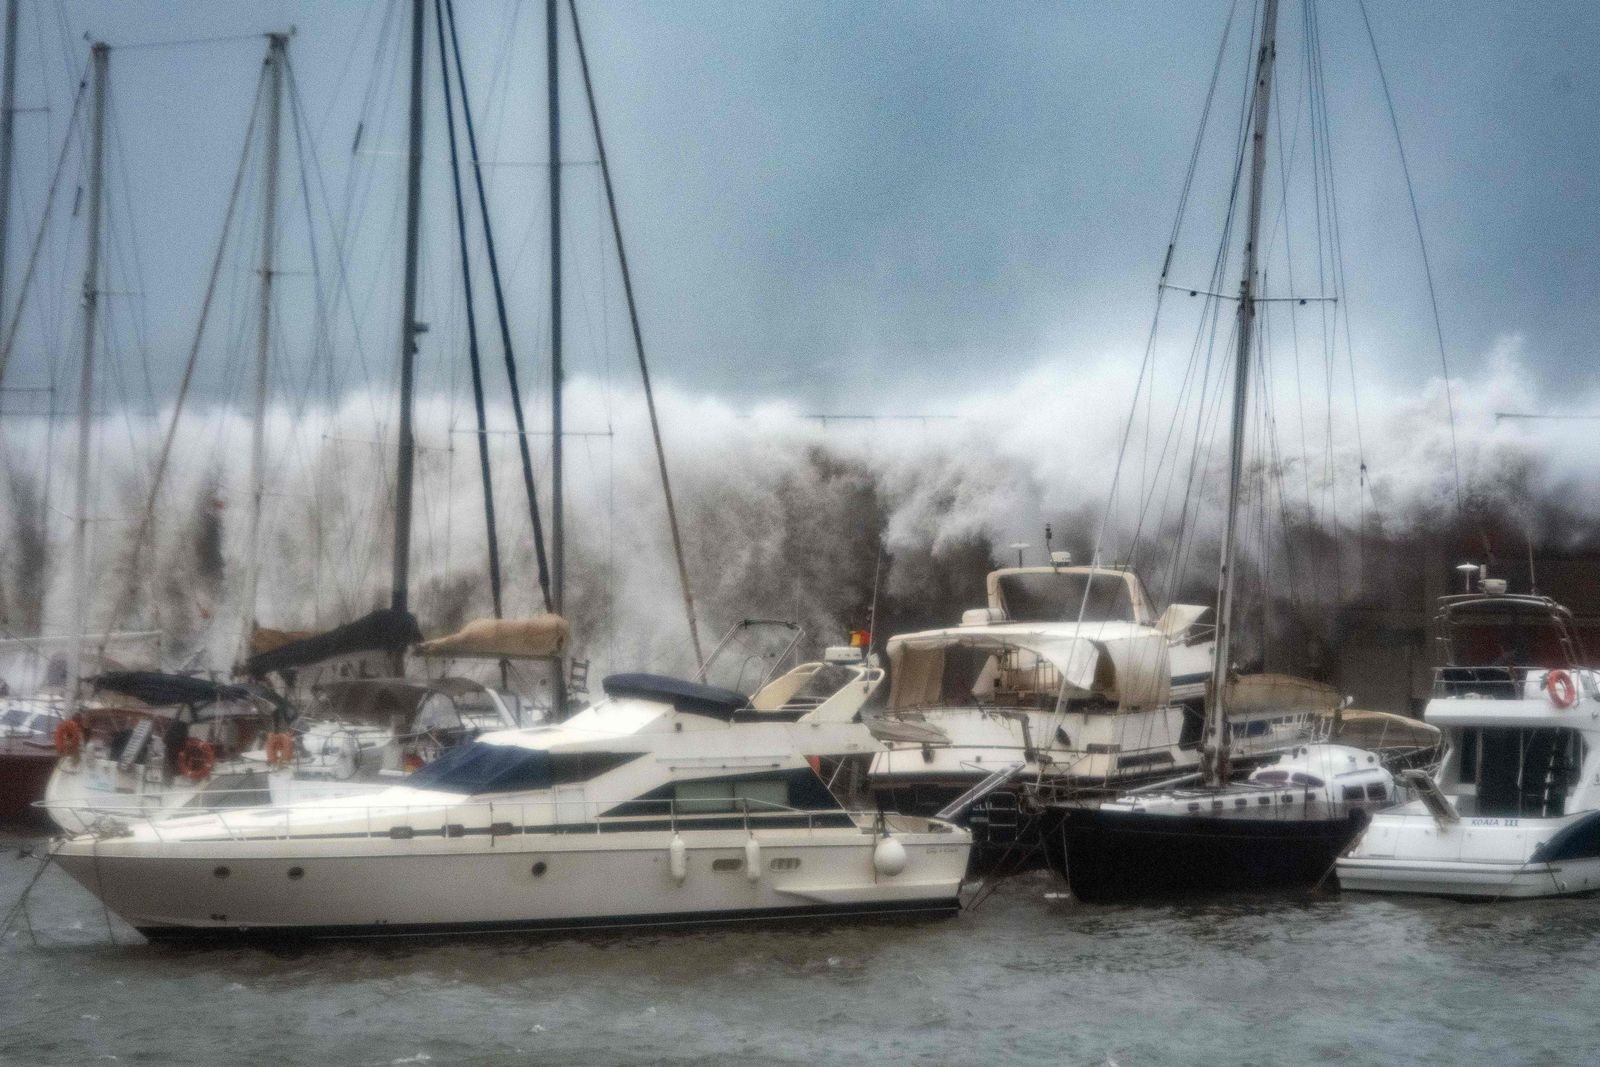 TOPSHOT-SPAIN-WEATHER-CLIMATE-STORM-GLORIA